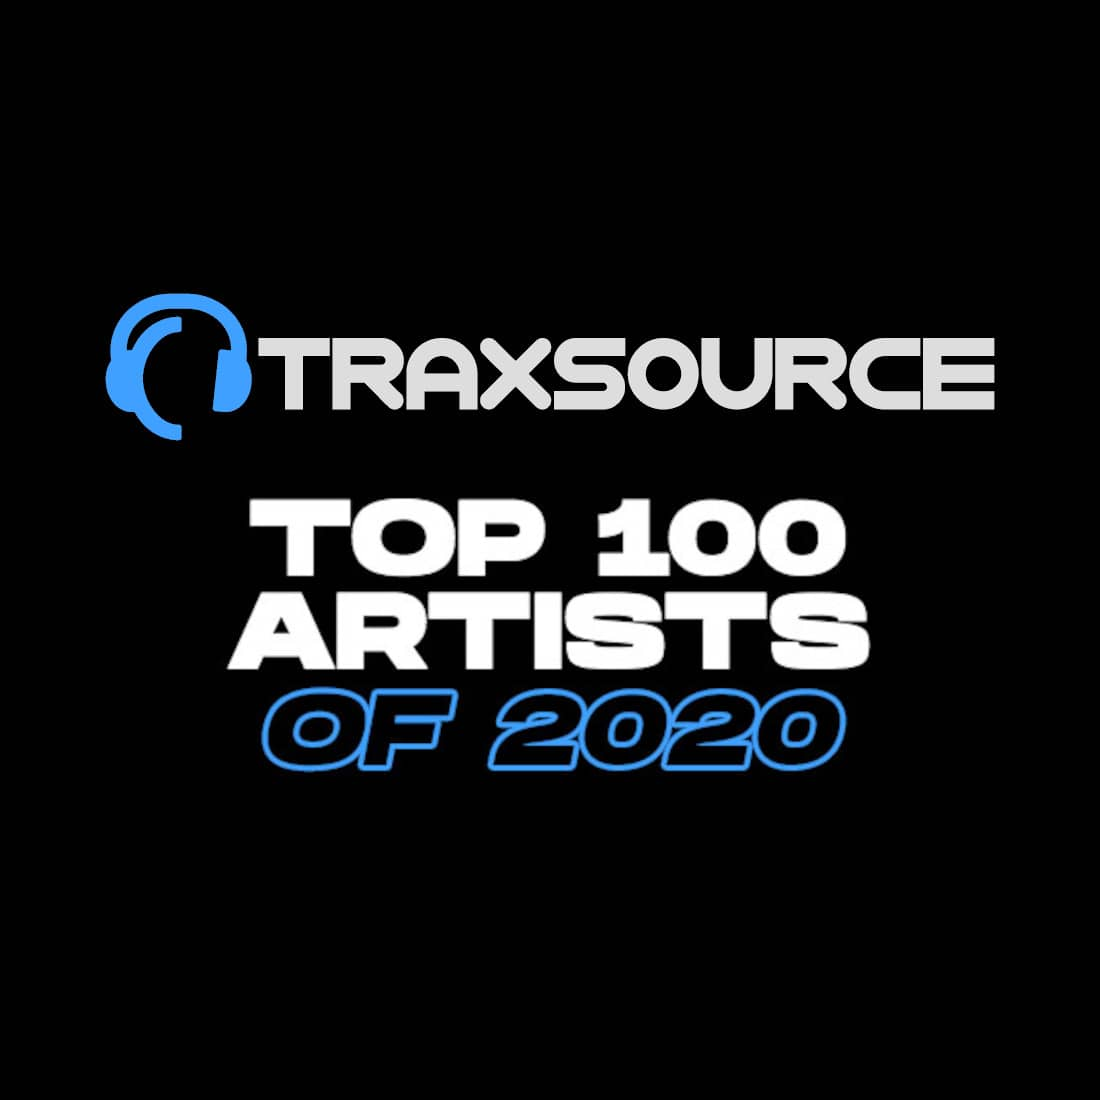 Traxsource Top 100 Artists of 2020 with Weekly Shows on House FM!